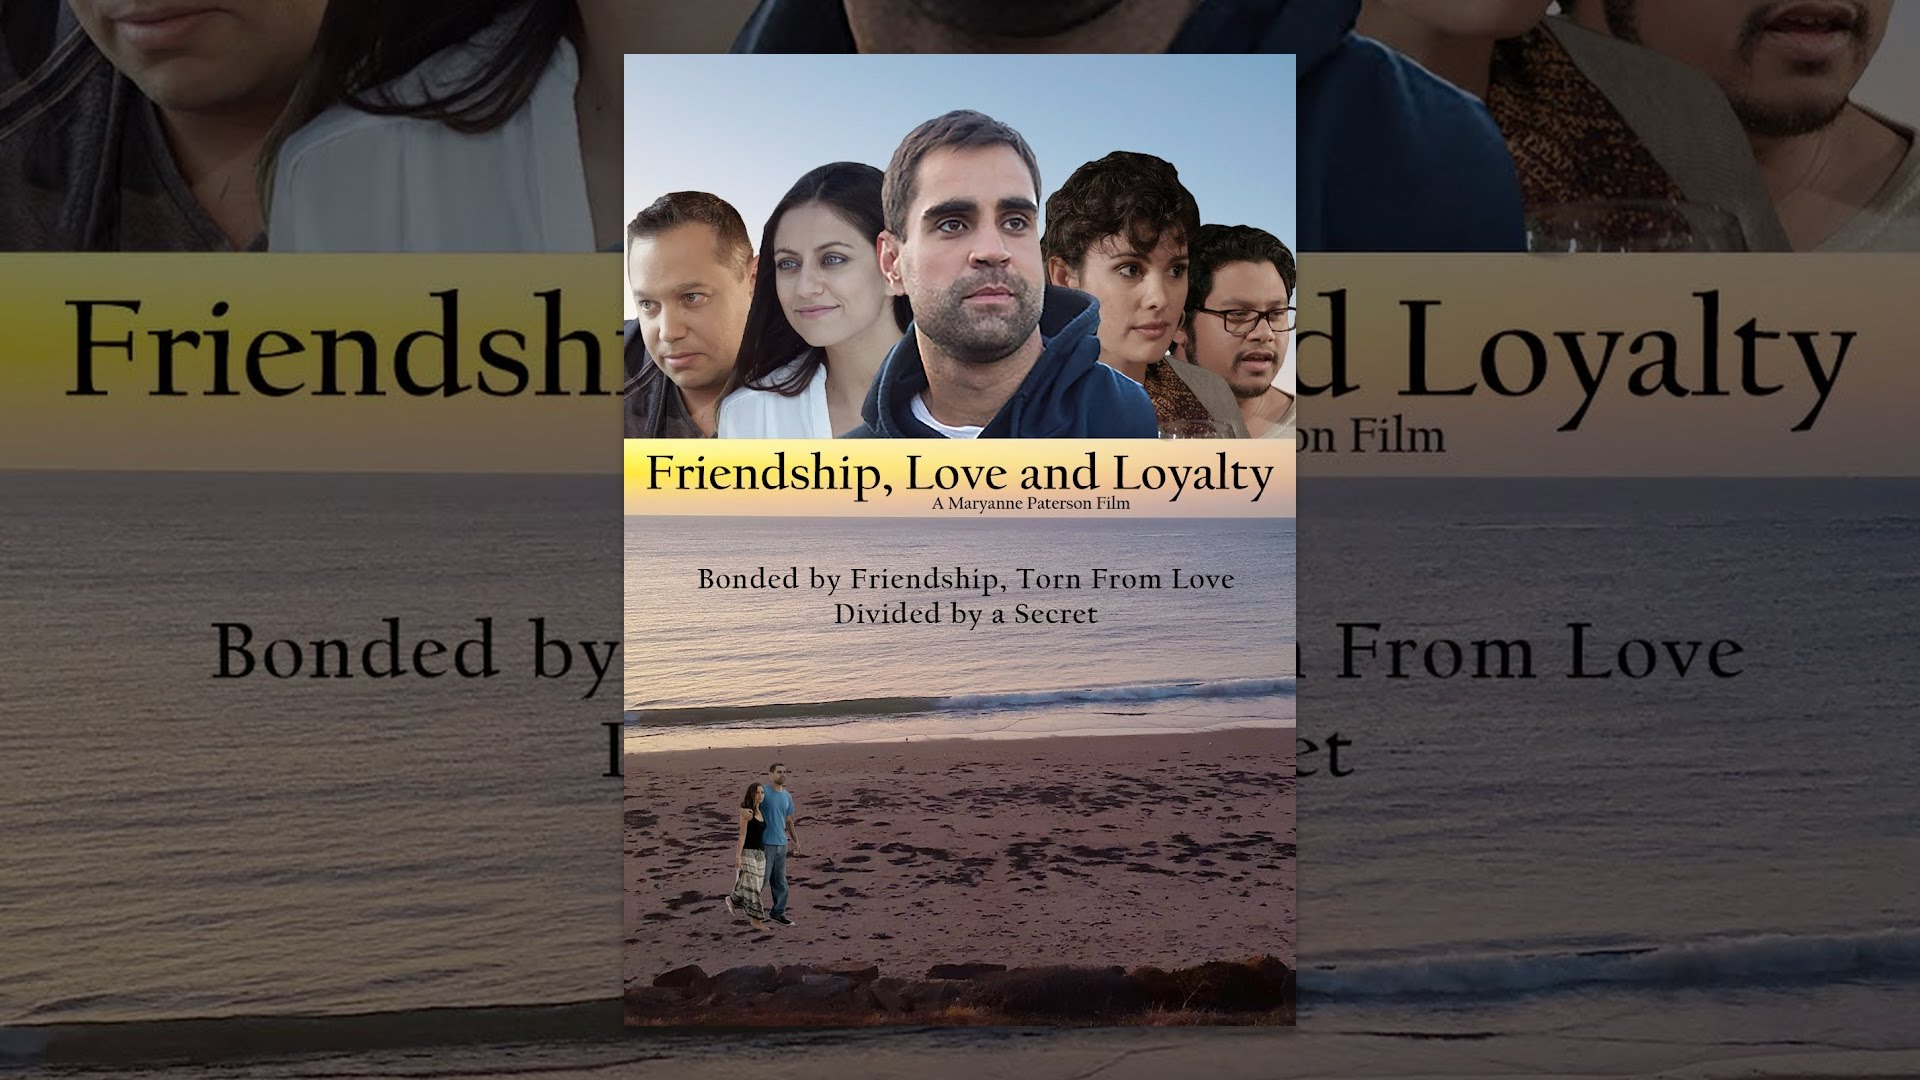 love and loyalty essay loyalty Loyalty betrayal essays: over 180,000 loyalty betrayal essays, loyalty betrayal term papers, loyalty betrayal research paper, book reports 184 990 essays, term and research papers available for unlimited access.